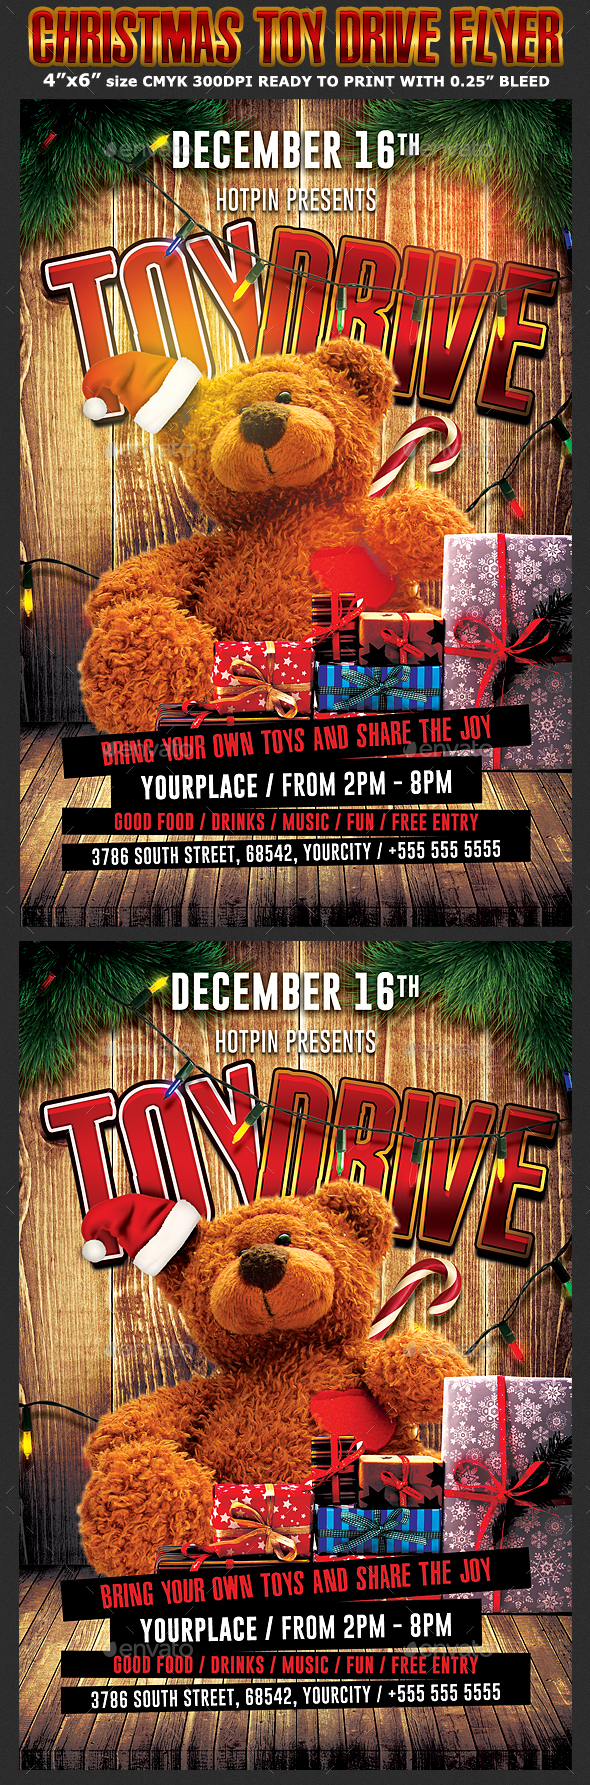 christmas toy drive flyer